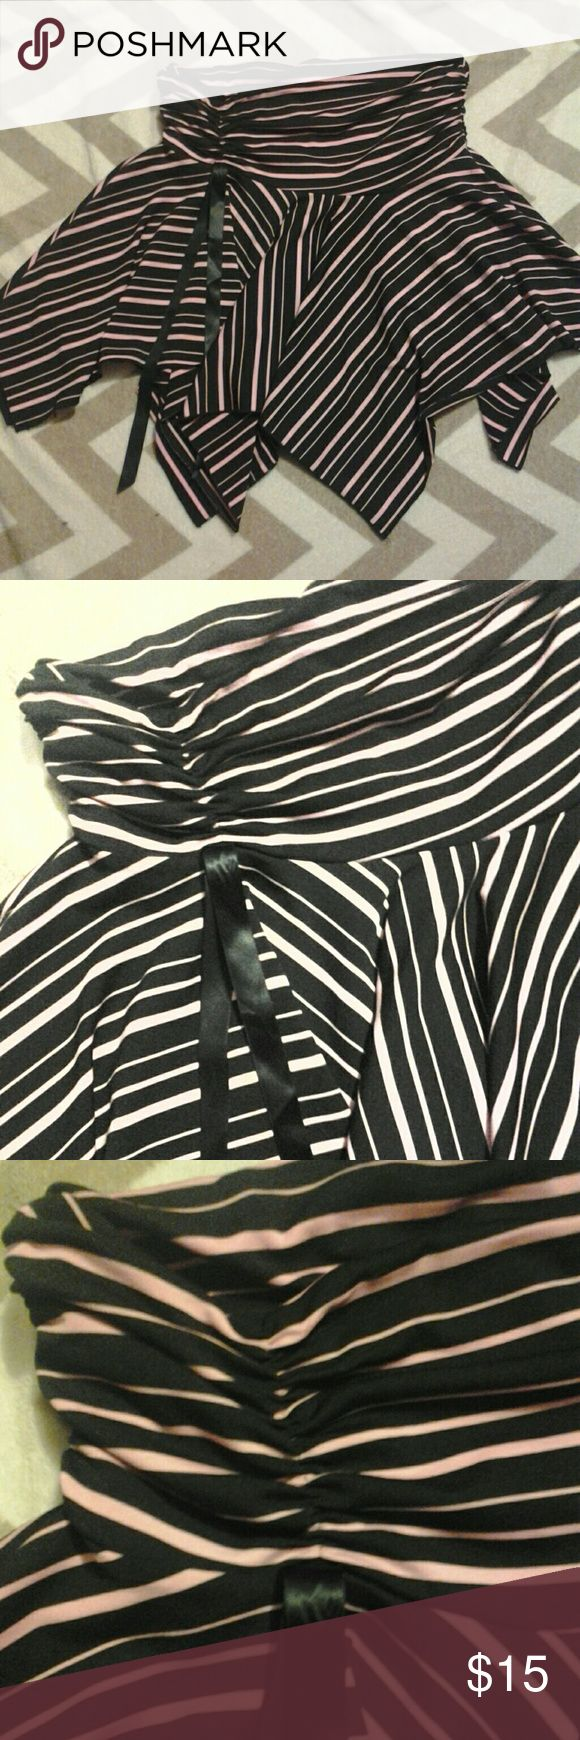 Ruffle Skirt Throwback or vintage ruffle skirt. Black & pink stripes with black ribbons. Size large. Juniors. Lots of stretch. Gently used.  Think Mean Girls with Rachel McAdams and Lindsay Lohan! Skirts Mini